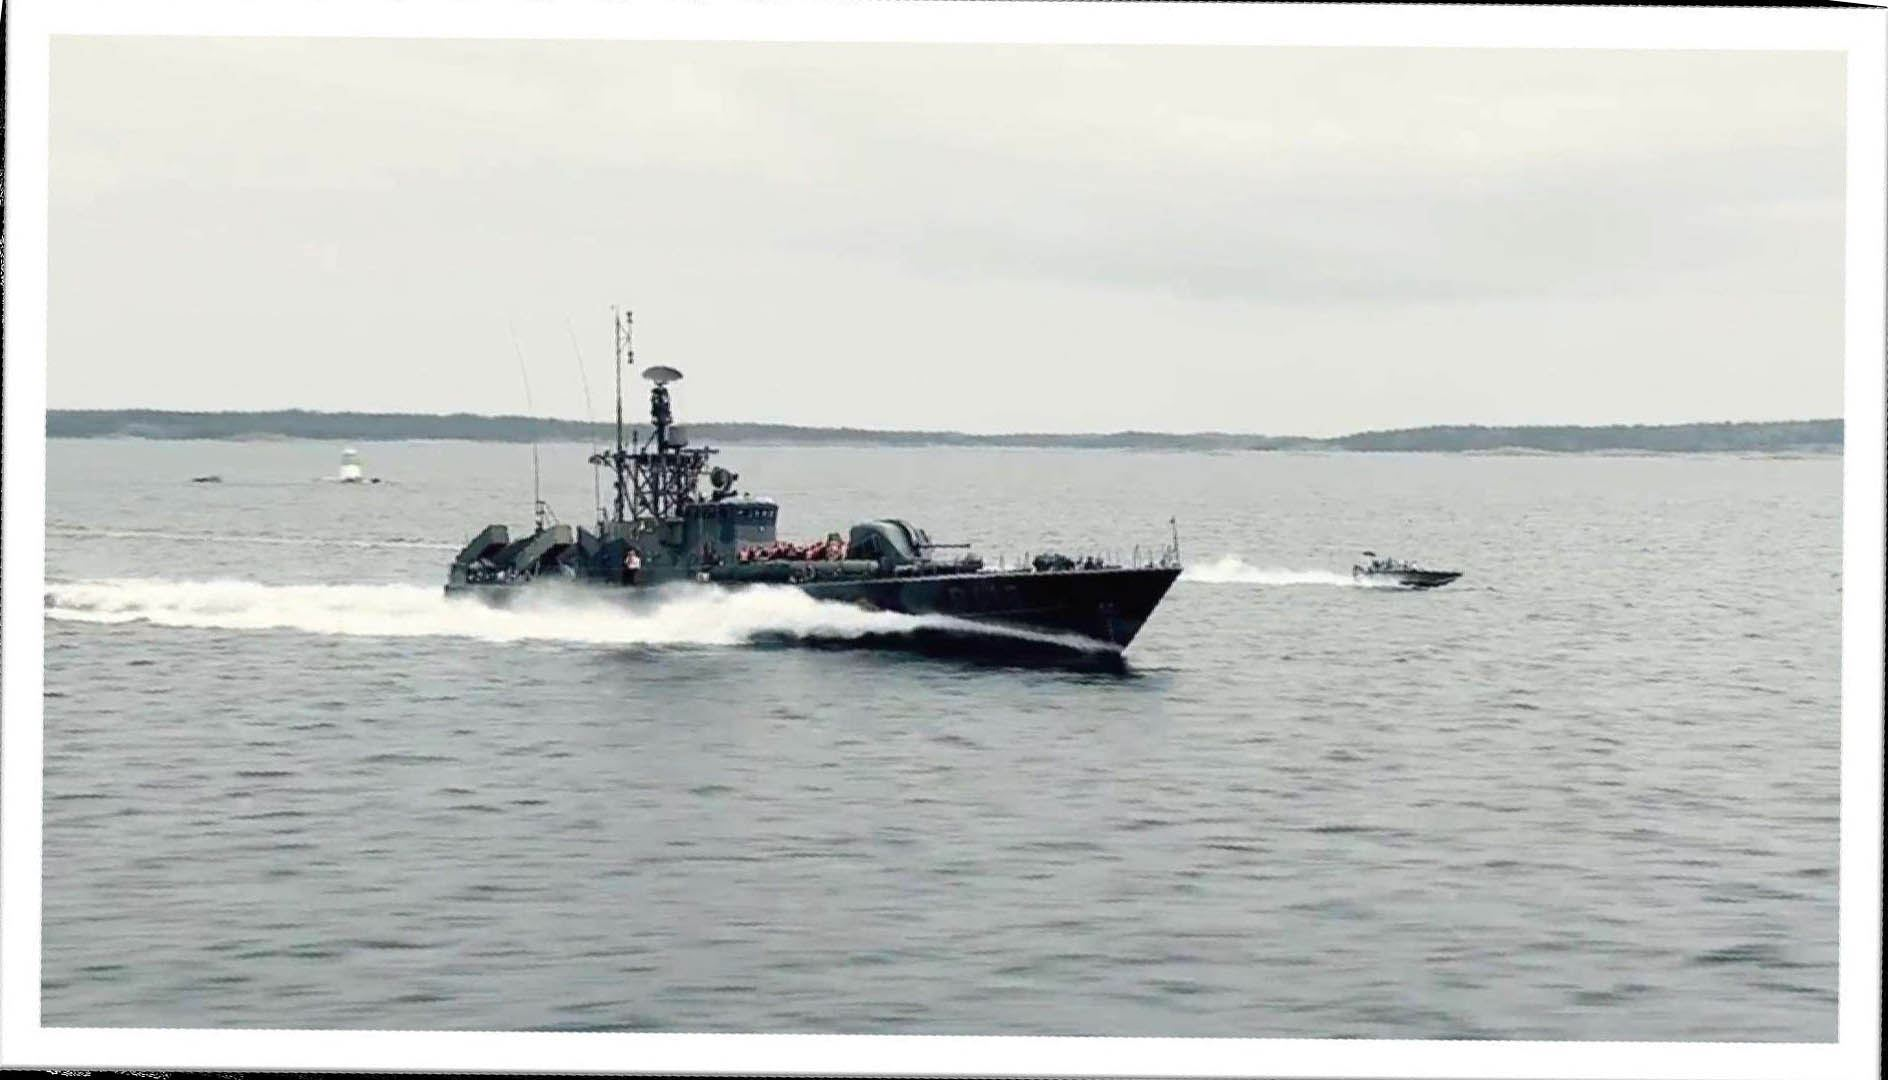 Take a ride with the missile boat R142 Ystad